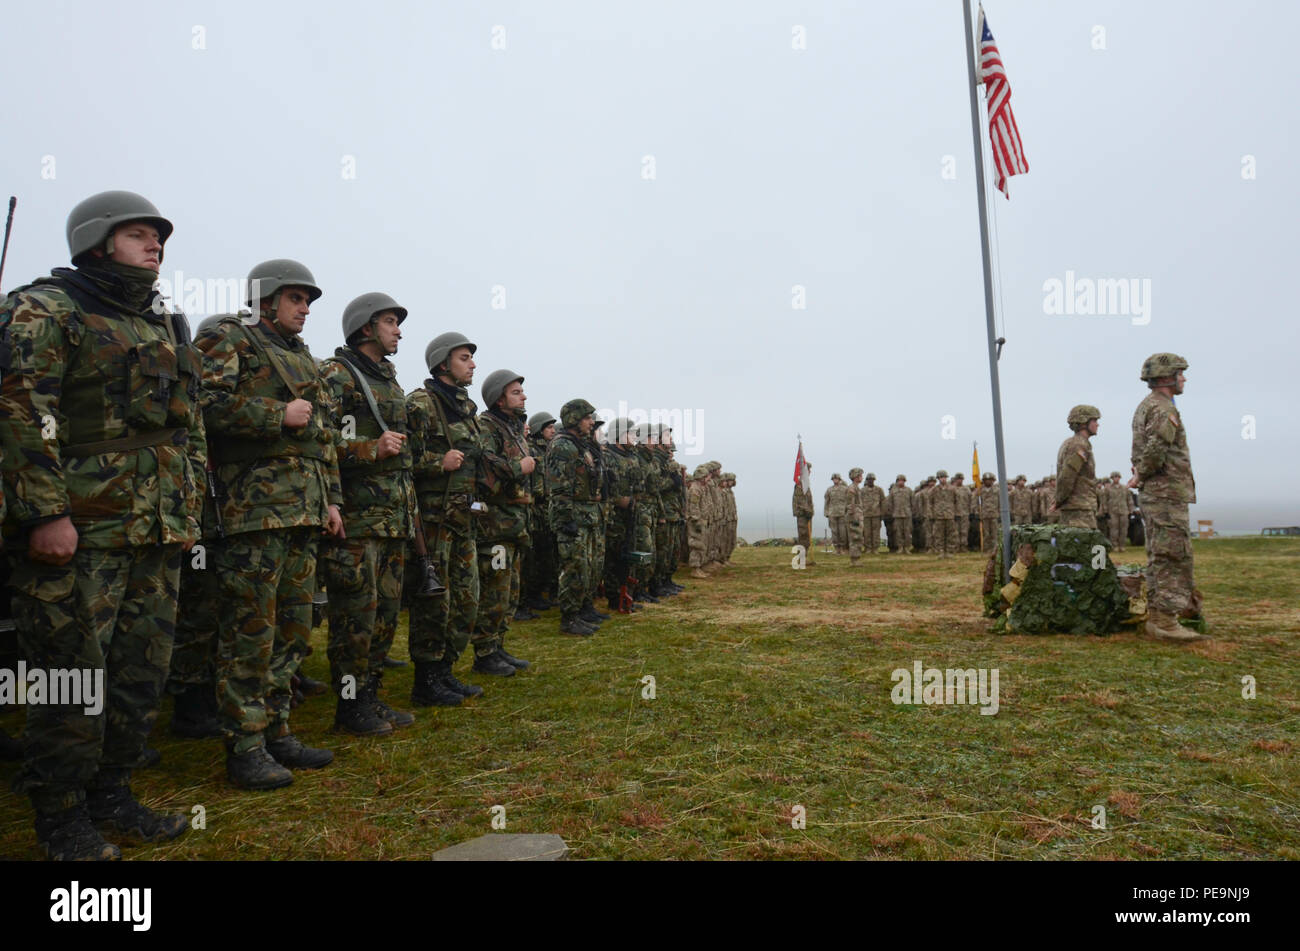 U.S. Soldiers of 5th Squadron, 7th Cavalry Regiment, 3rd Infantry Division, stationed at Fort Stewart, Ga., stand at parade rest at the base of flag pole as U.S. and Bulgarian Soldiers of 61st Mechanized Brigade stand in formation during the closing ceremony of Exercise Peace Sentinel at Novo Selo Training Center, Bulgaria, Nov. 24, 2015. (U.S. Army photo by Staff Sgt. Steven M. Colvin/Released) - Stock Image